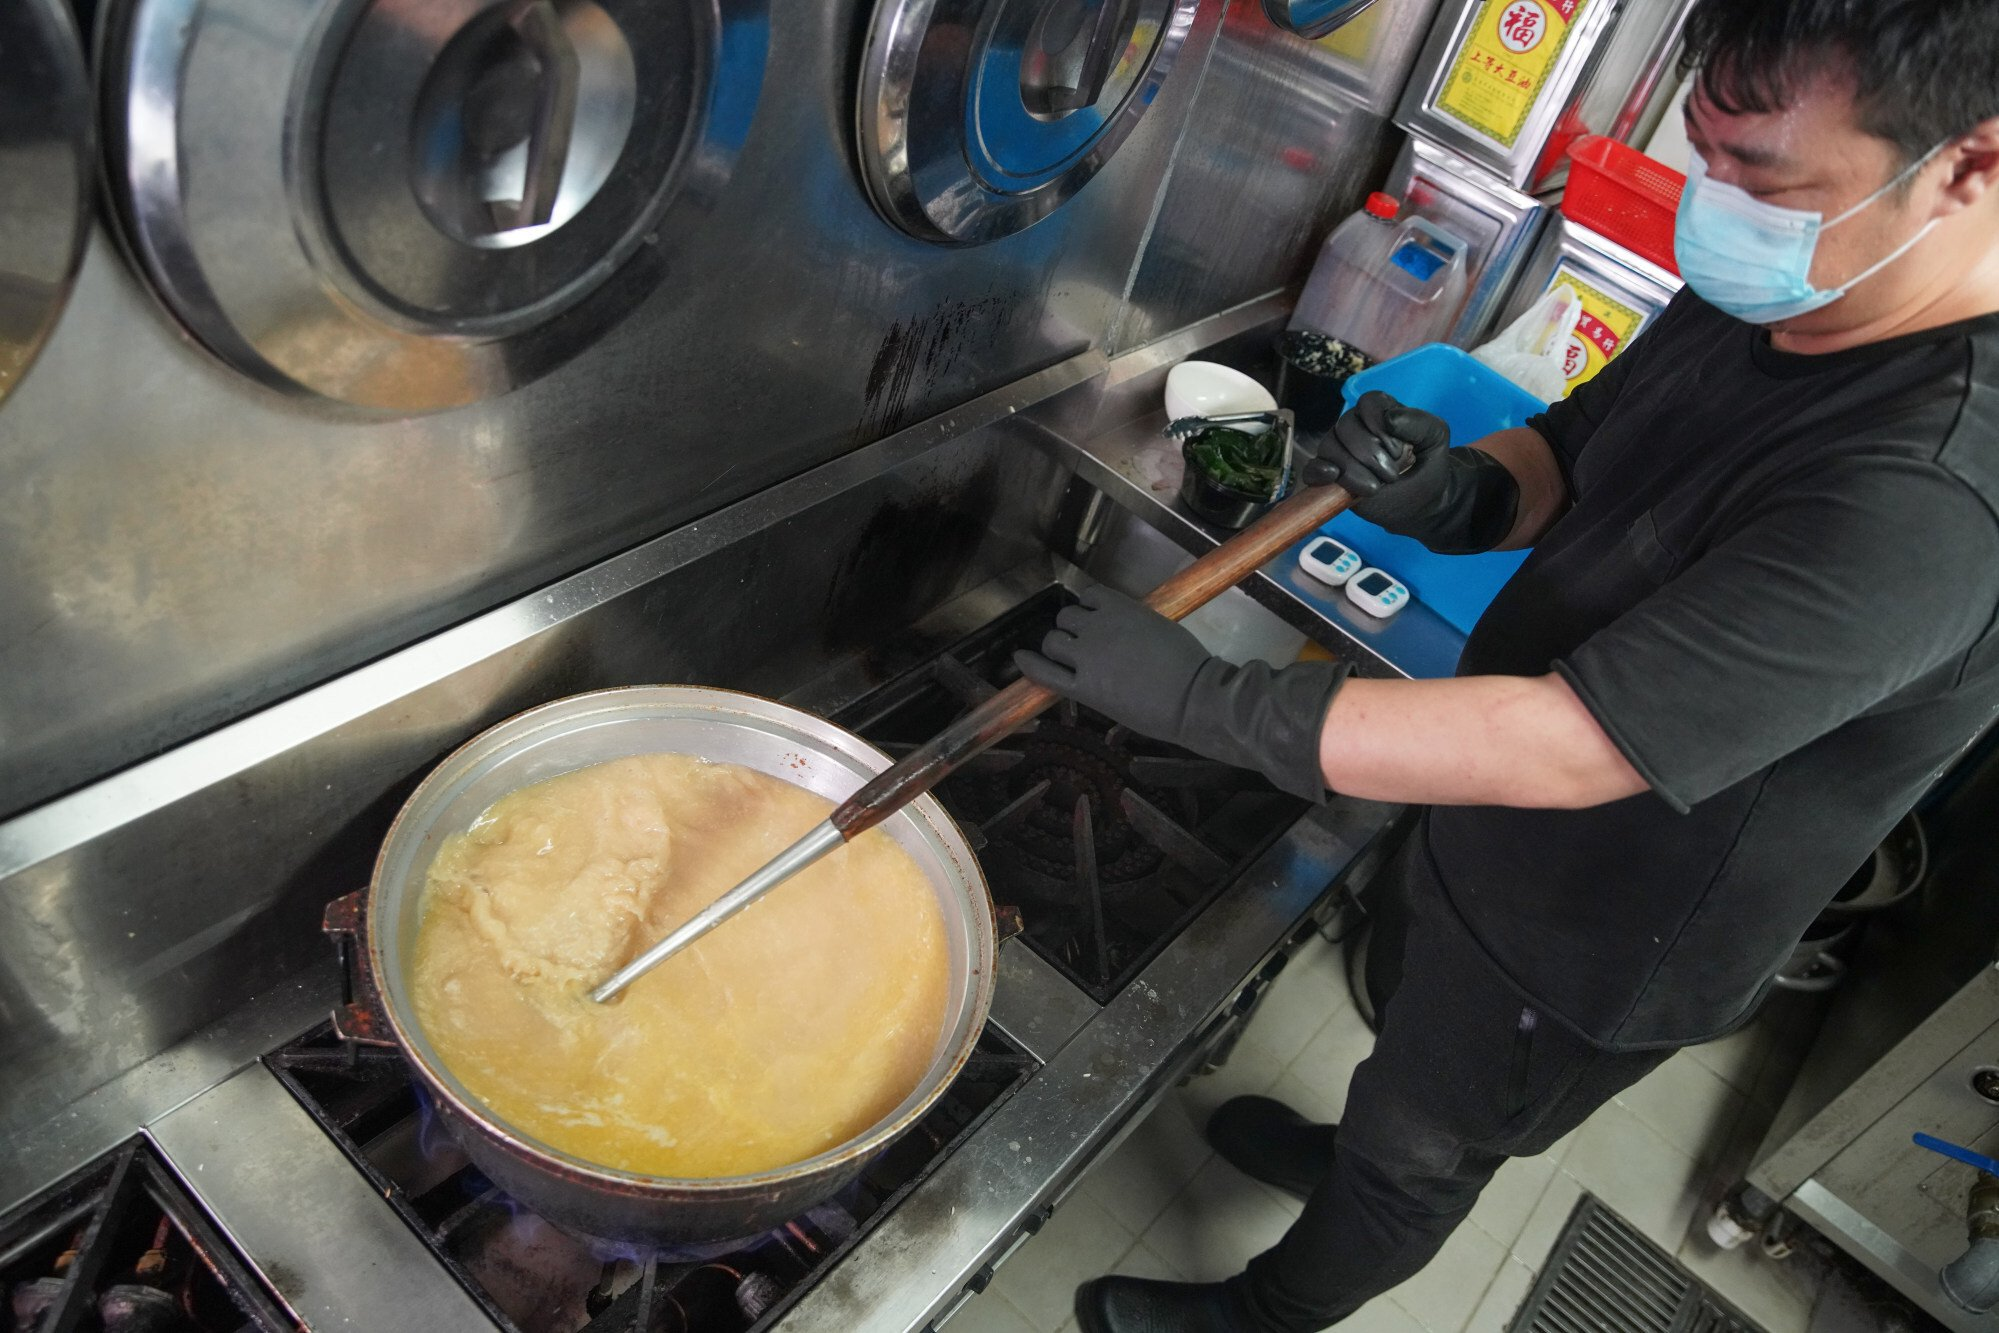 Chef at Tian Tian Hainanese Chicken Rice demonstrates how to cook the rice. Photo: Winson Wong